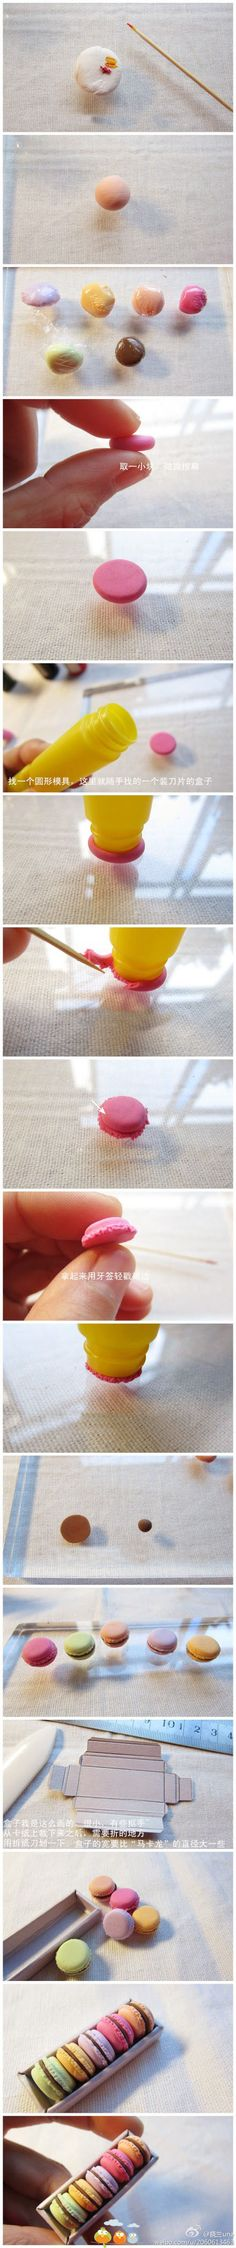 polymer clay miniature macaroon. It looks like a burger with a colorful bun!